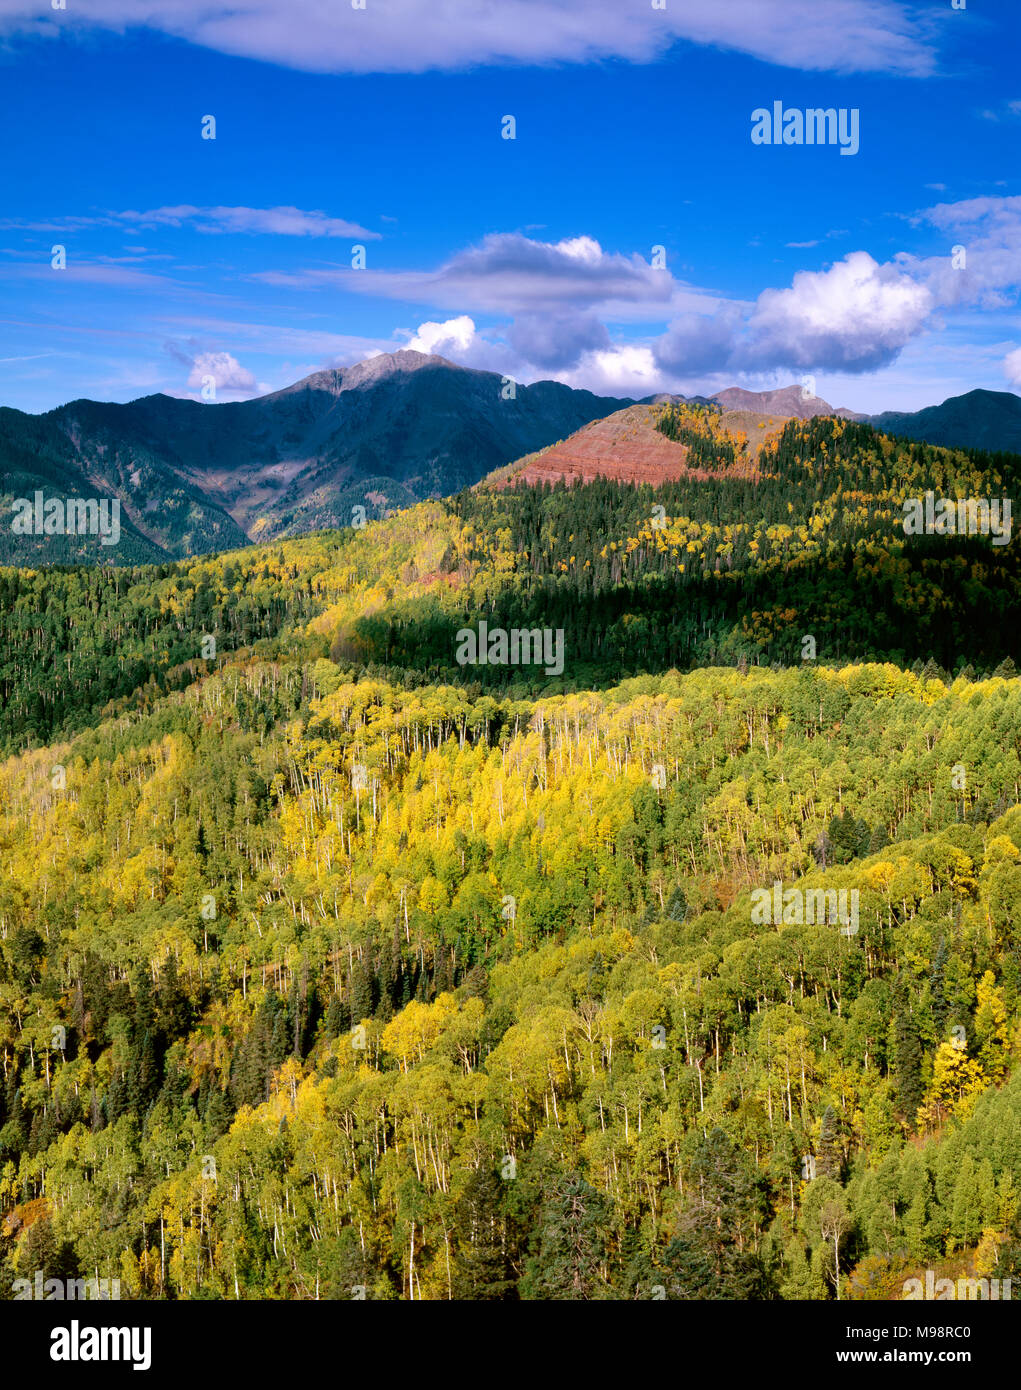 Silver Mountain, San Juan National Forest, Colorado - Stock Image